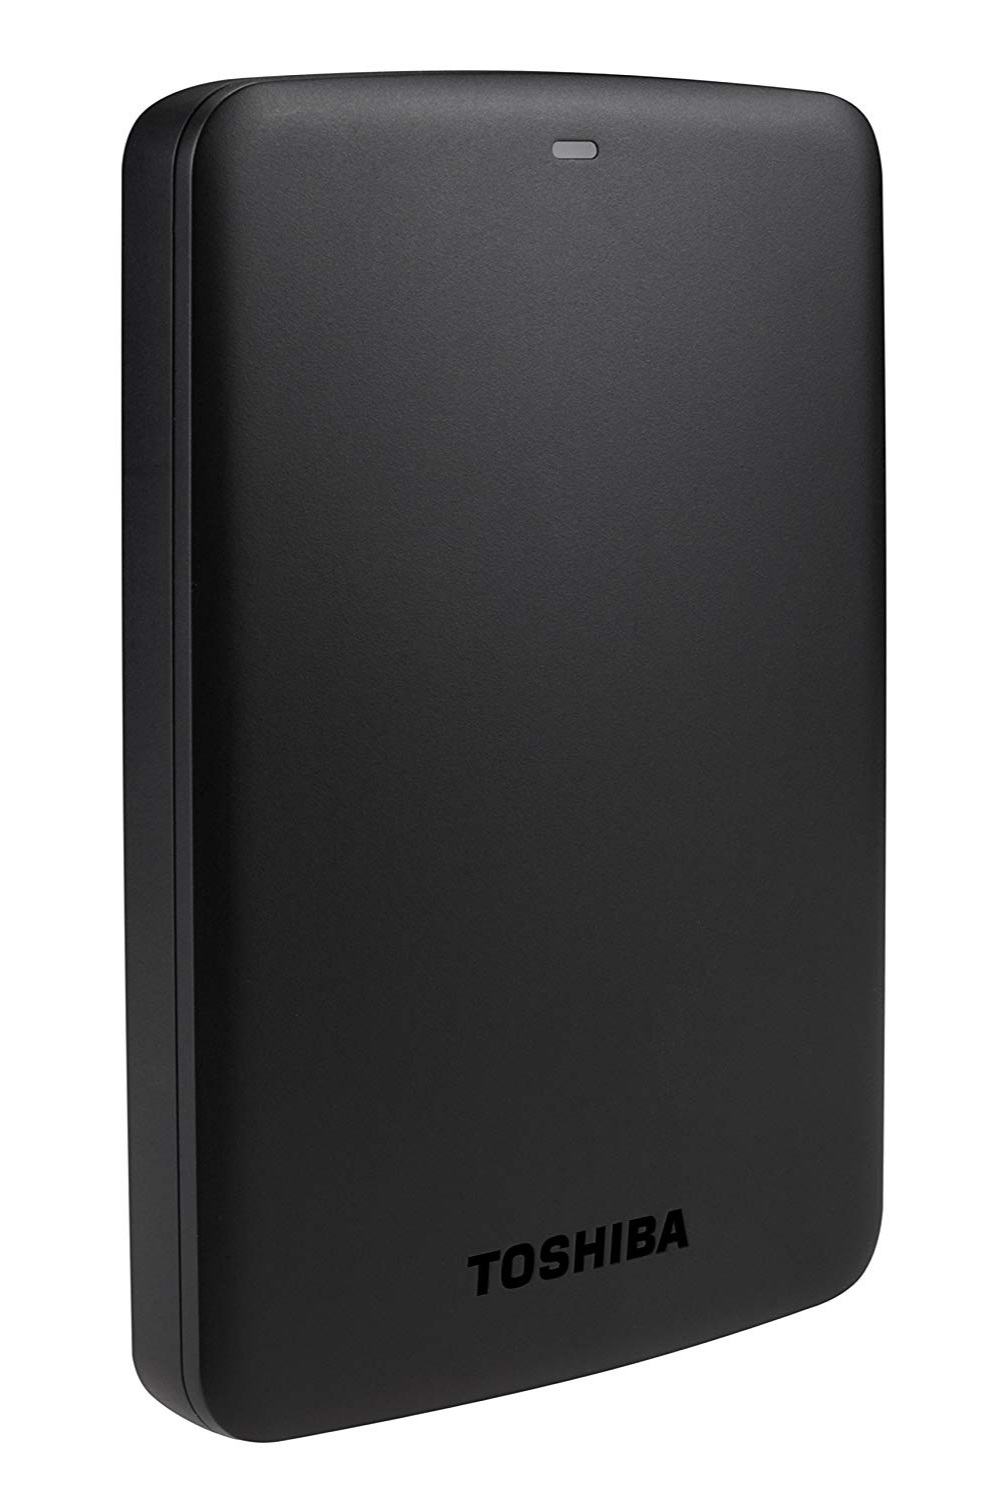 Toshiba Canvio Basics 2 TB external hard drive -